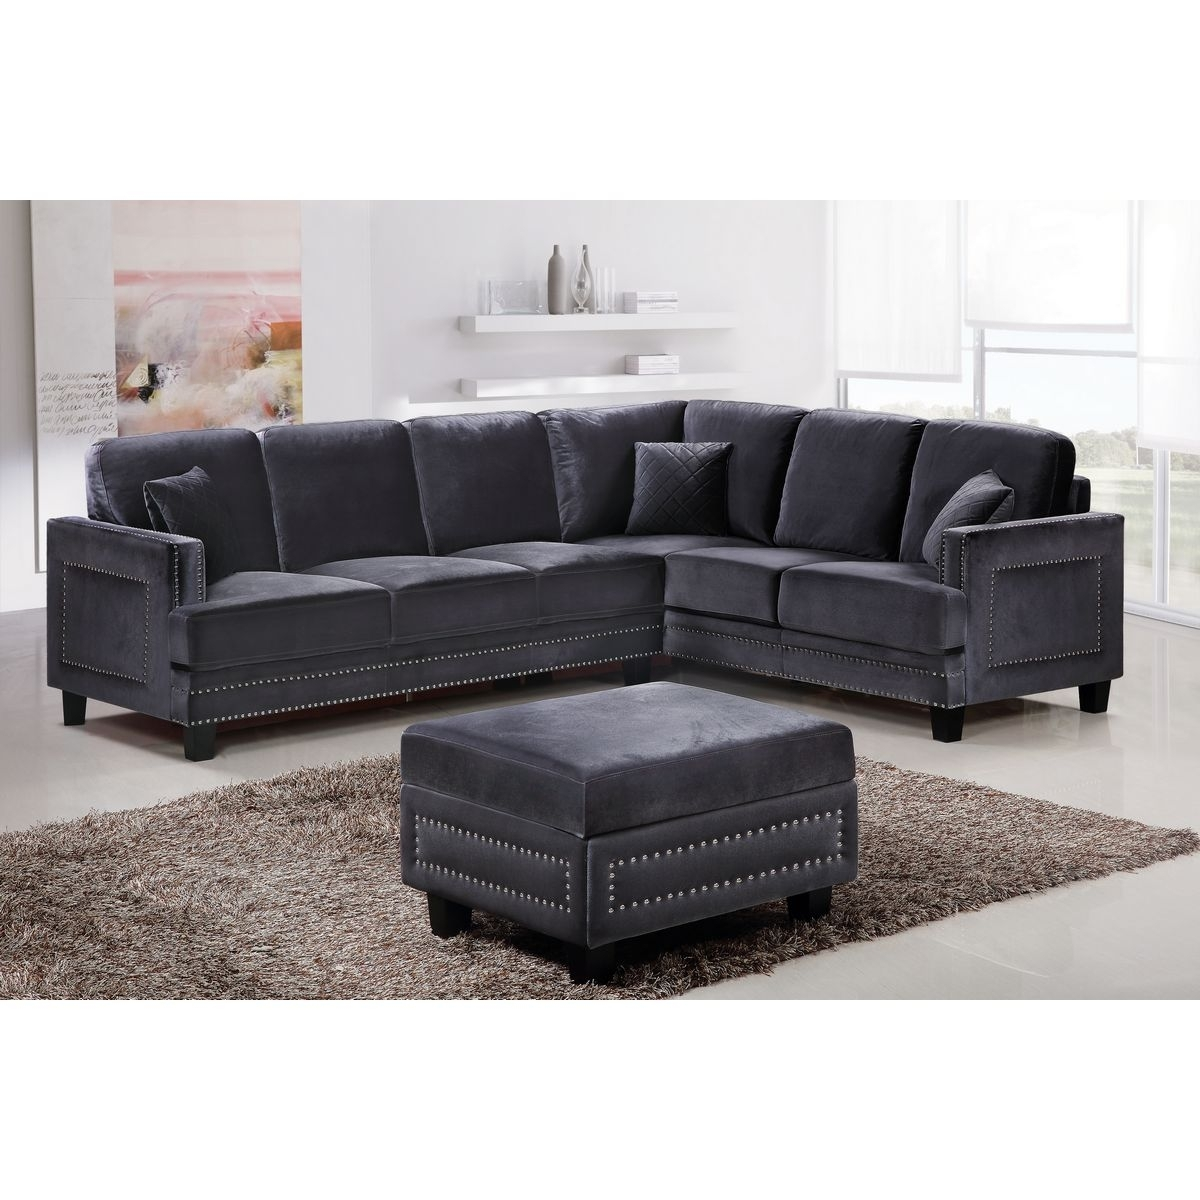 10 Best Sectional Sofas With Nailhead Trim